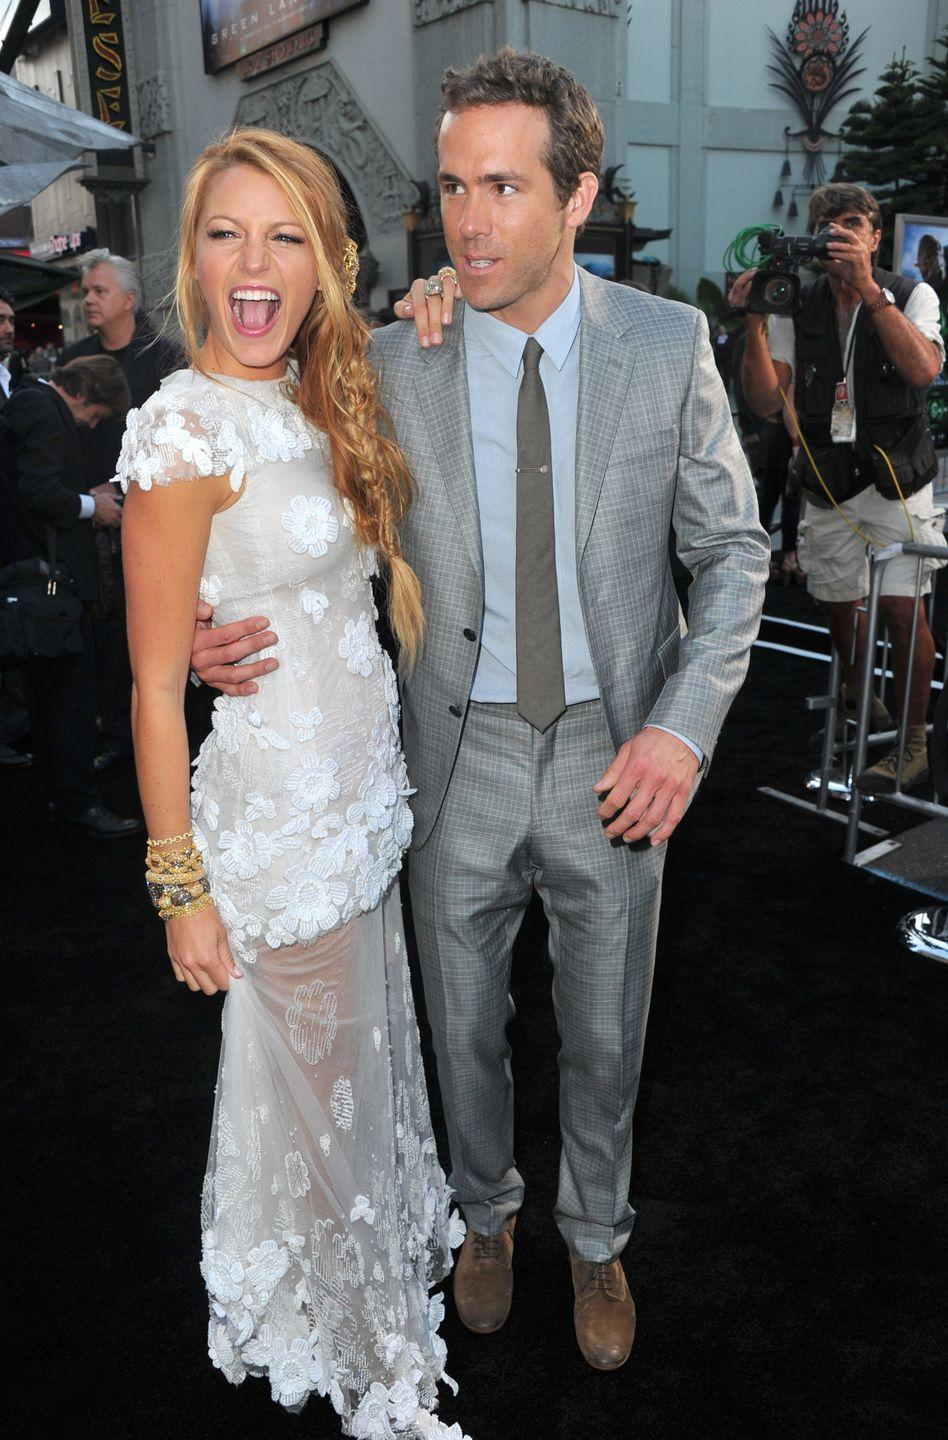 <p>Having been engaged (to Alanis Morissette) and married (to Scarlett Johansson) Reynolds met Lively in 2010 on the set of Green Lantern and they married in 2012. The couple have two daughters together, Inez and James.</p>